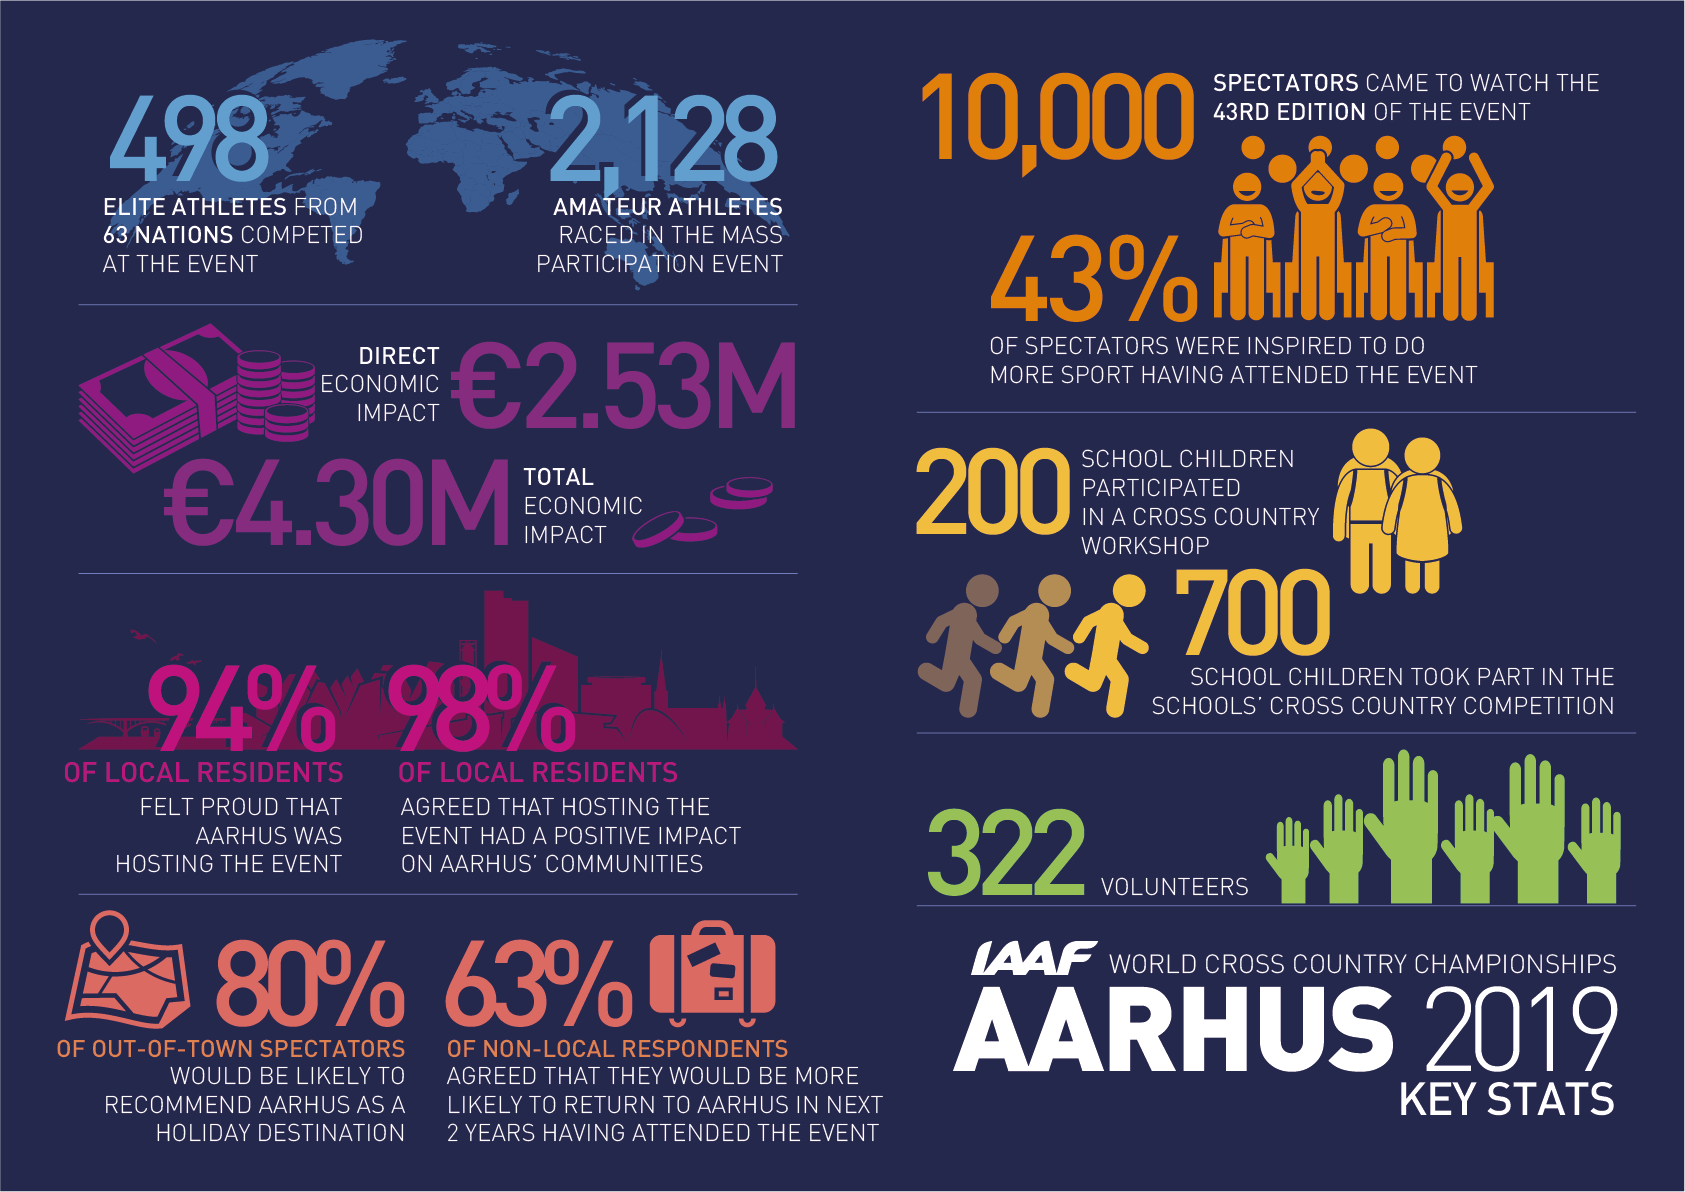 Extract from the IAAF World Cross Country Championships Aarhus 2019 economic impact study